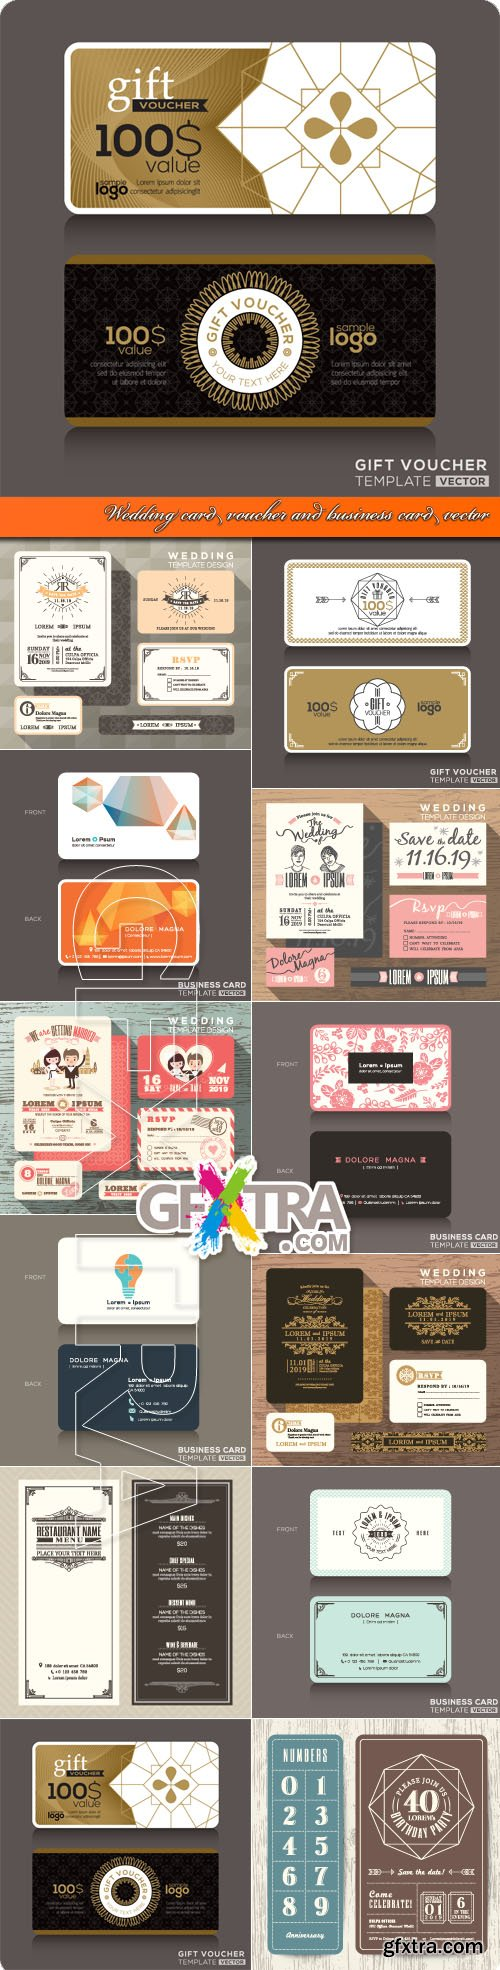 Wedding card voucher and business cards vector